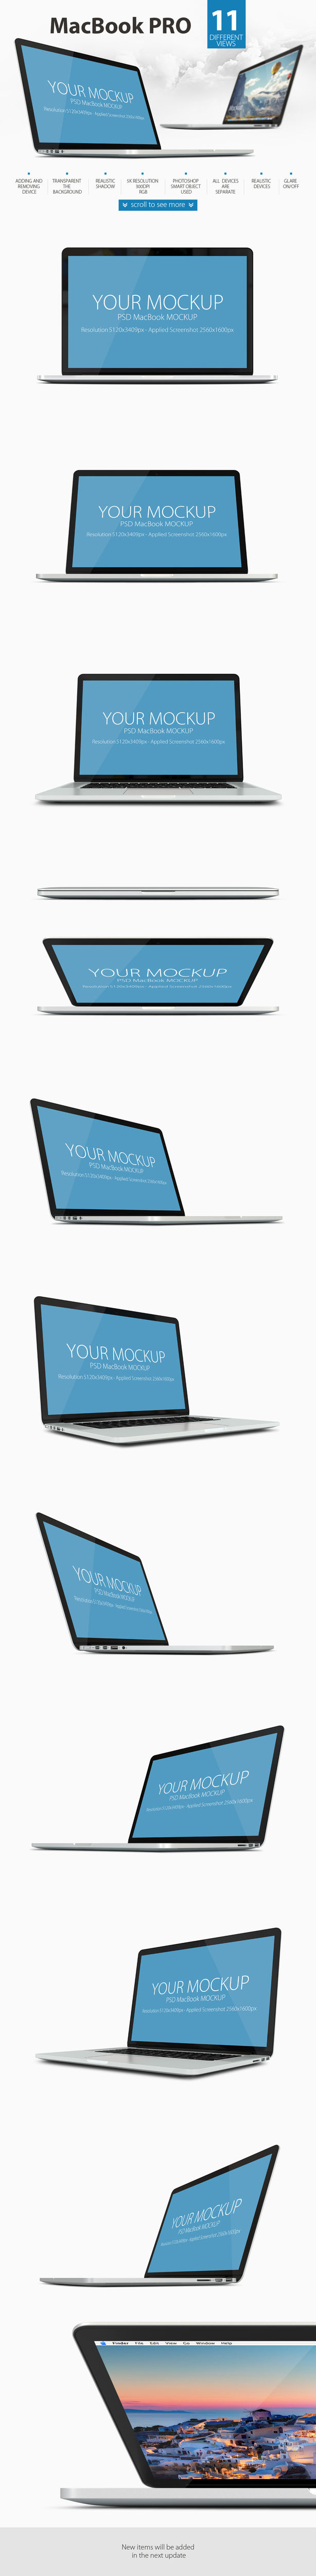 Download Imac Mockup Free Yellowimages